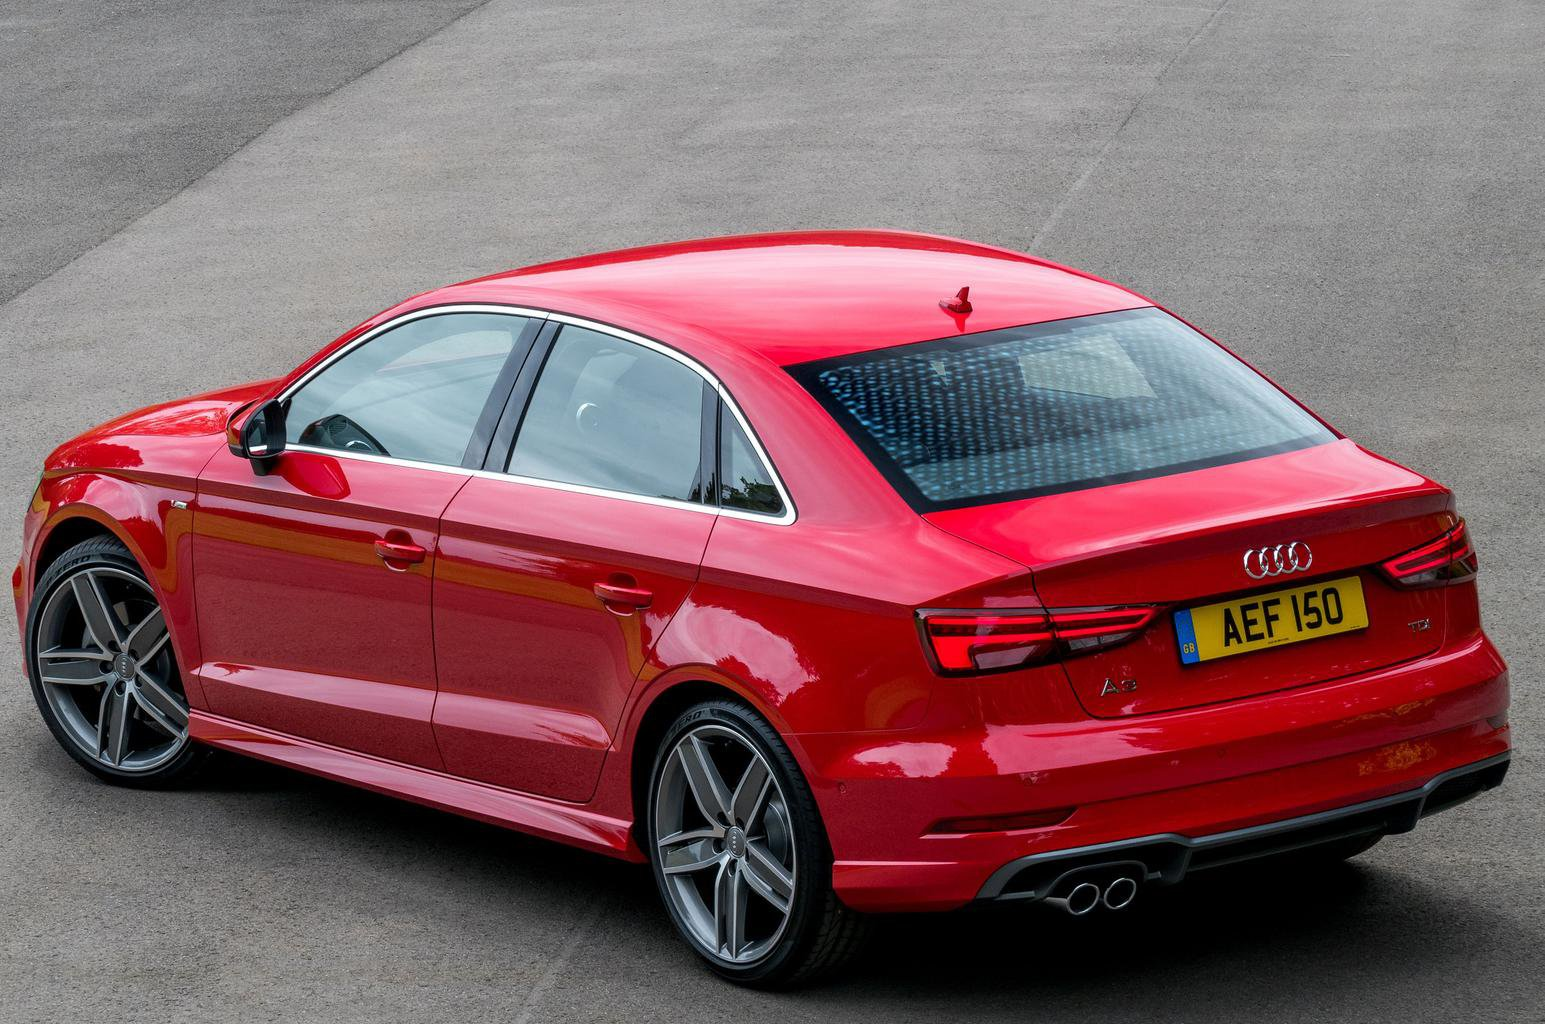 2016 Audi A3 Saloon 1.4 TFSI 150 review